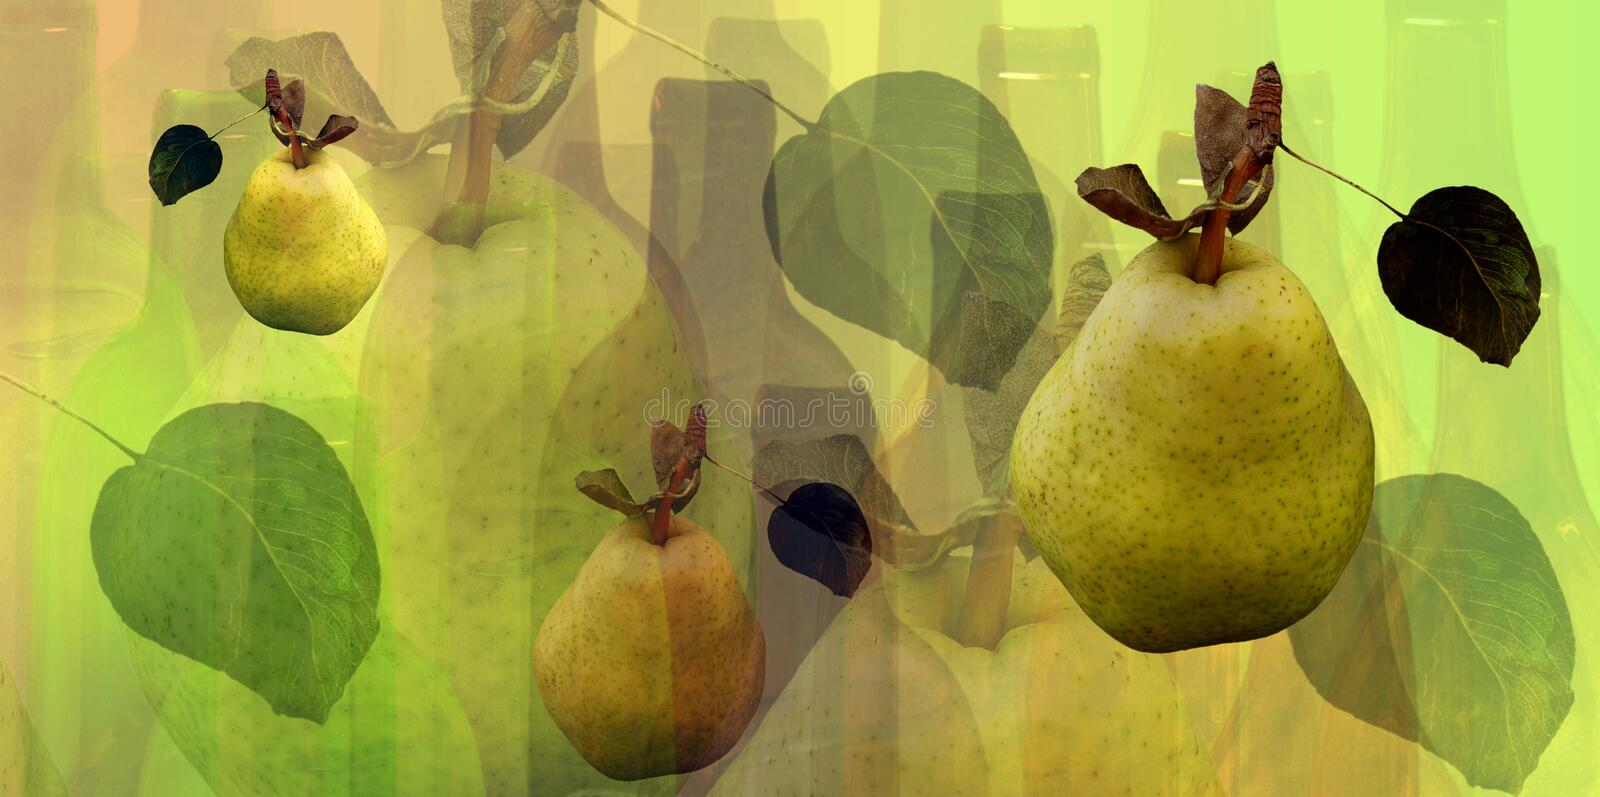 Bottles and pears pattern royalty free illustration